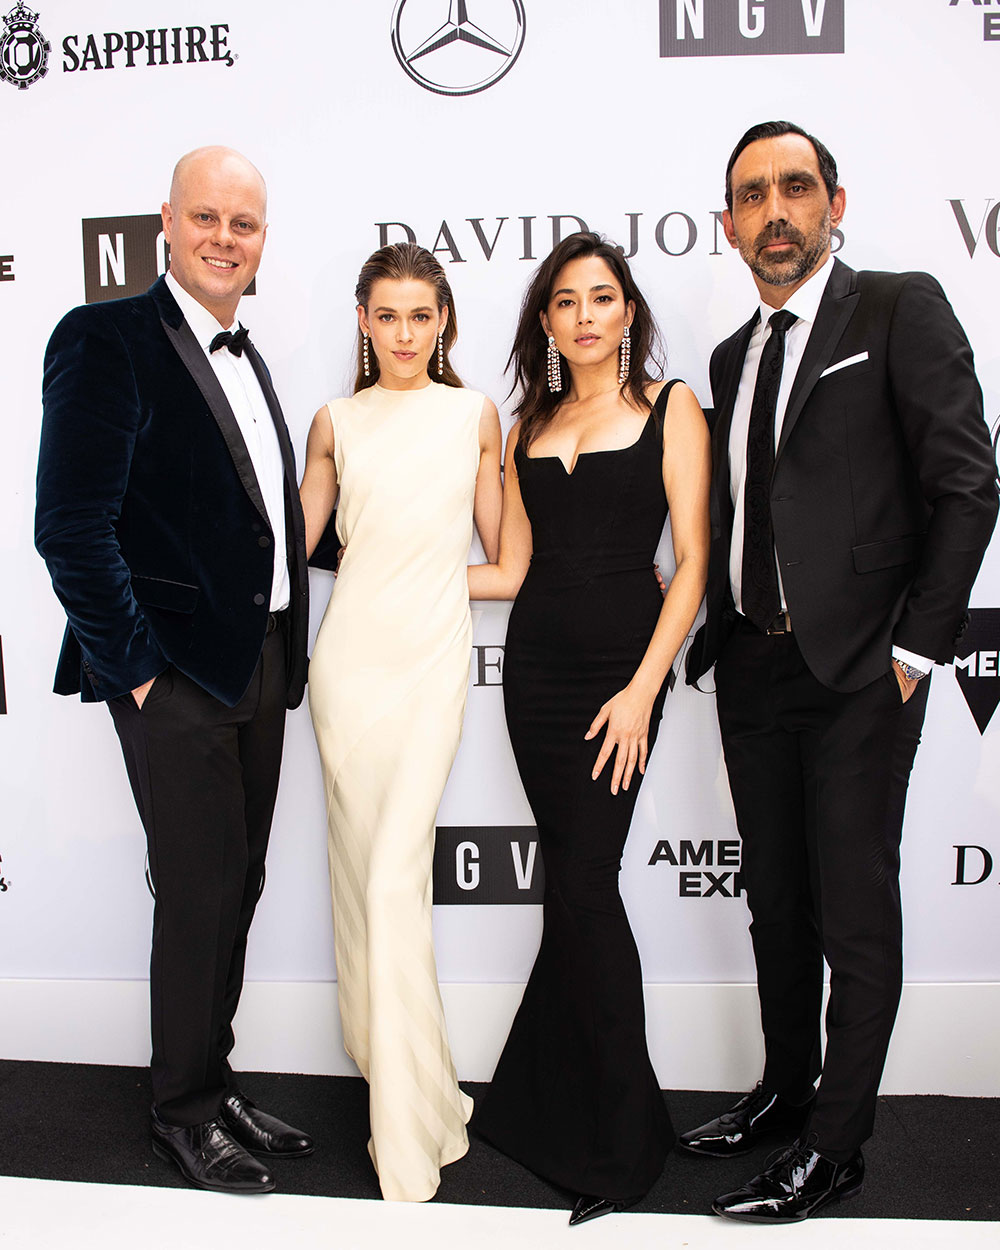 1bfed8ad5882 NGV Gala Exclusive Designer Collaboration with David Jones